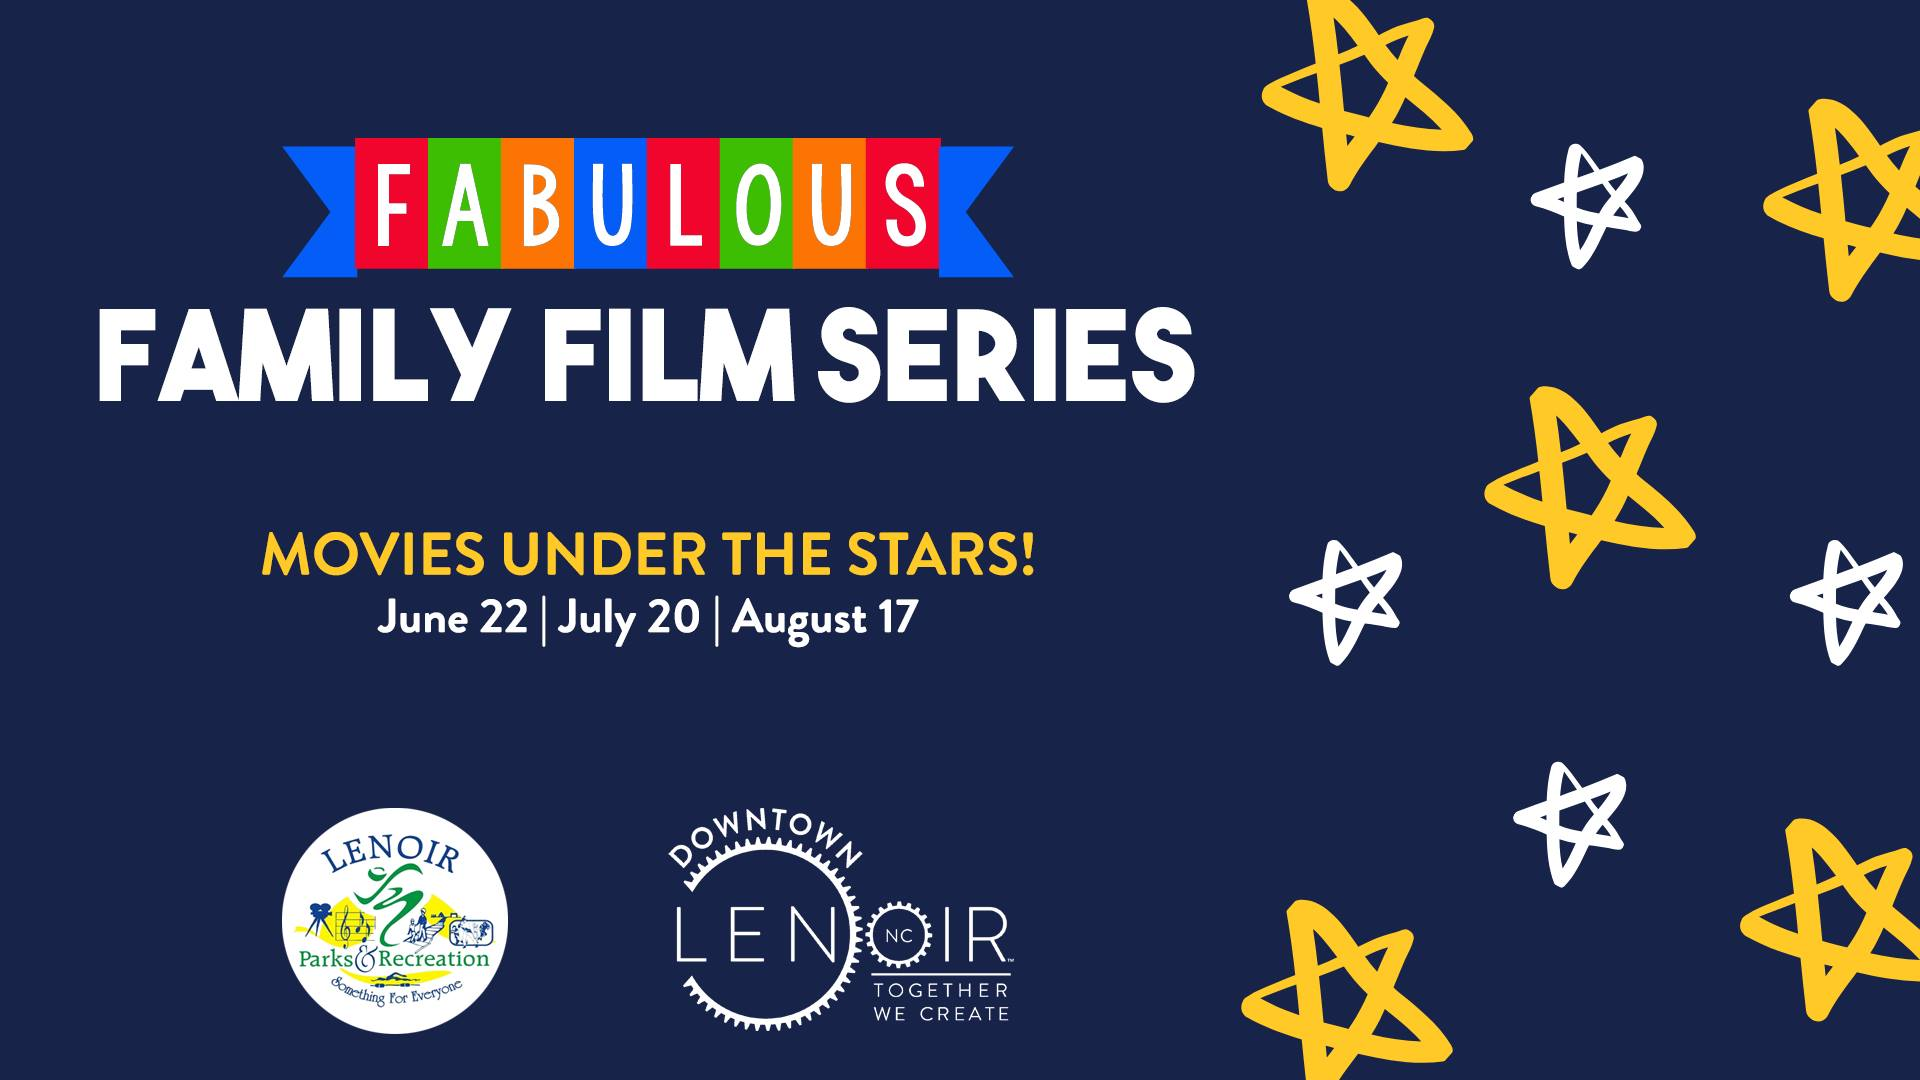 Fabulous Family Film Series, Movies Under the Stars, June 22, July 20, August 17